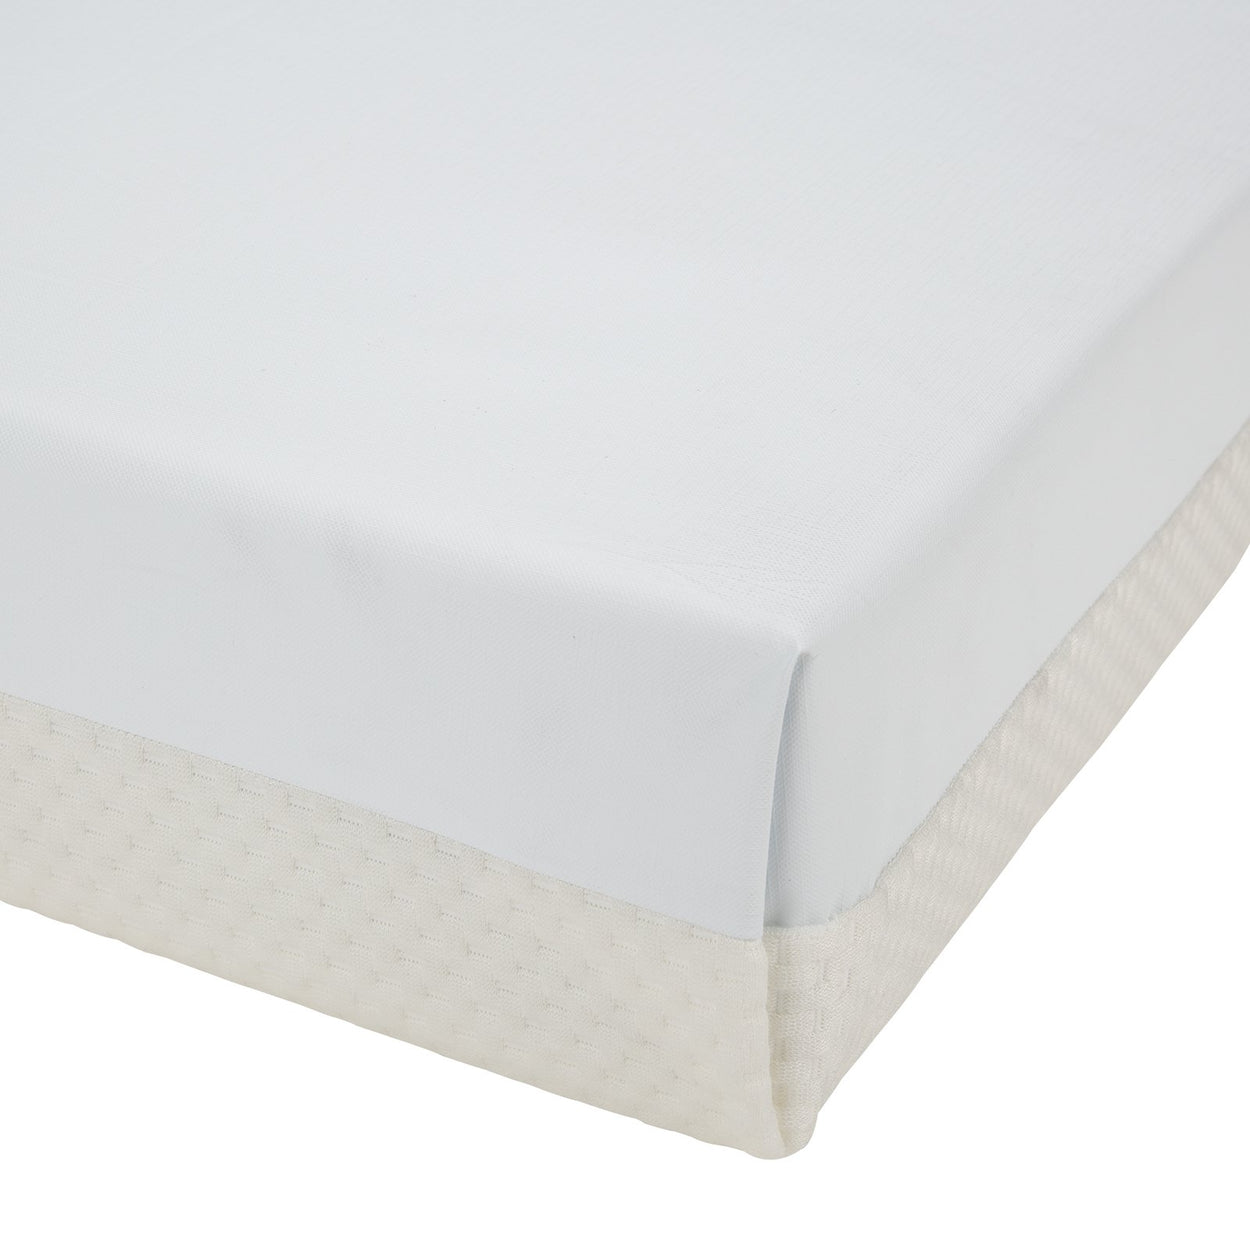 harmony sprung mattress cot bed 140 x 70cm